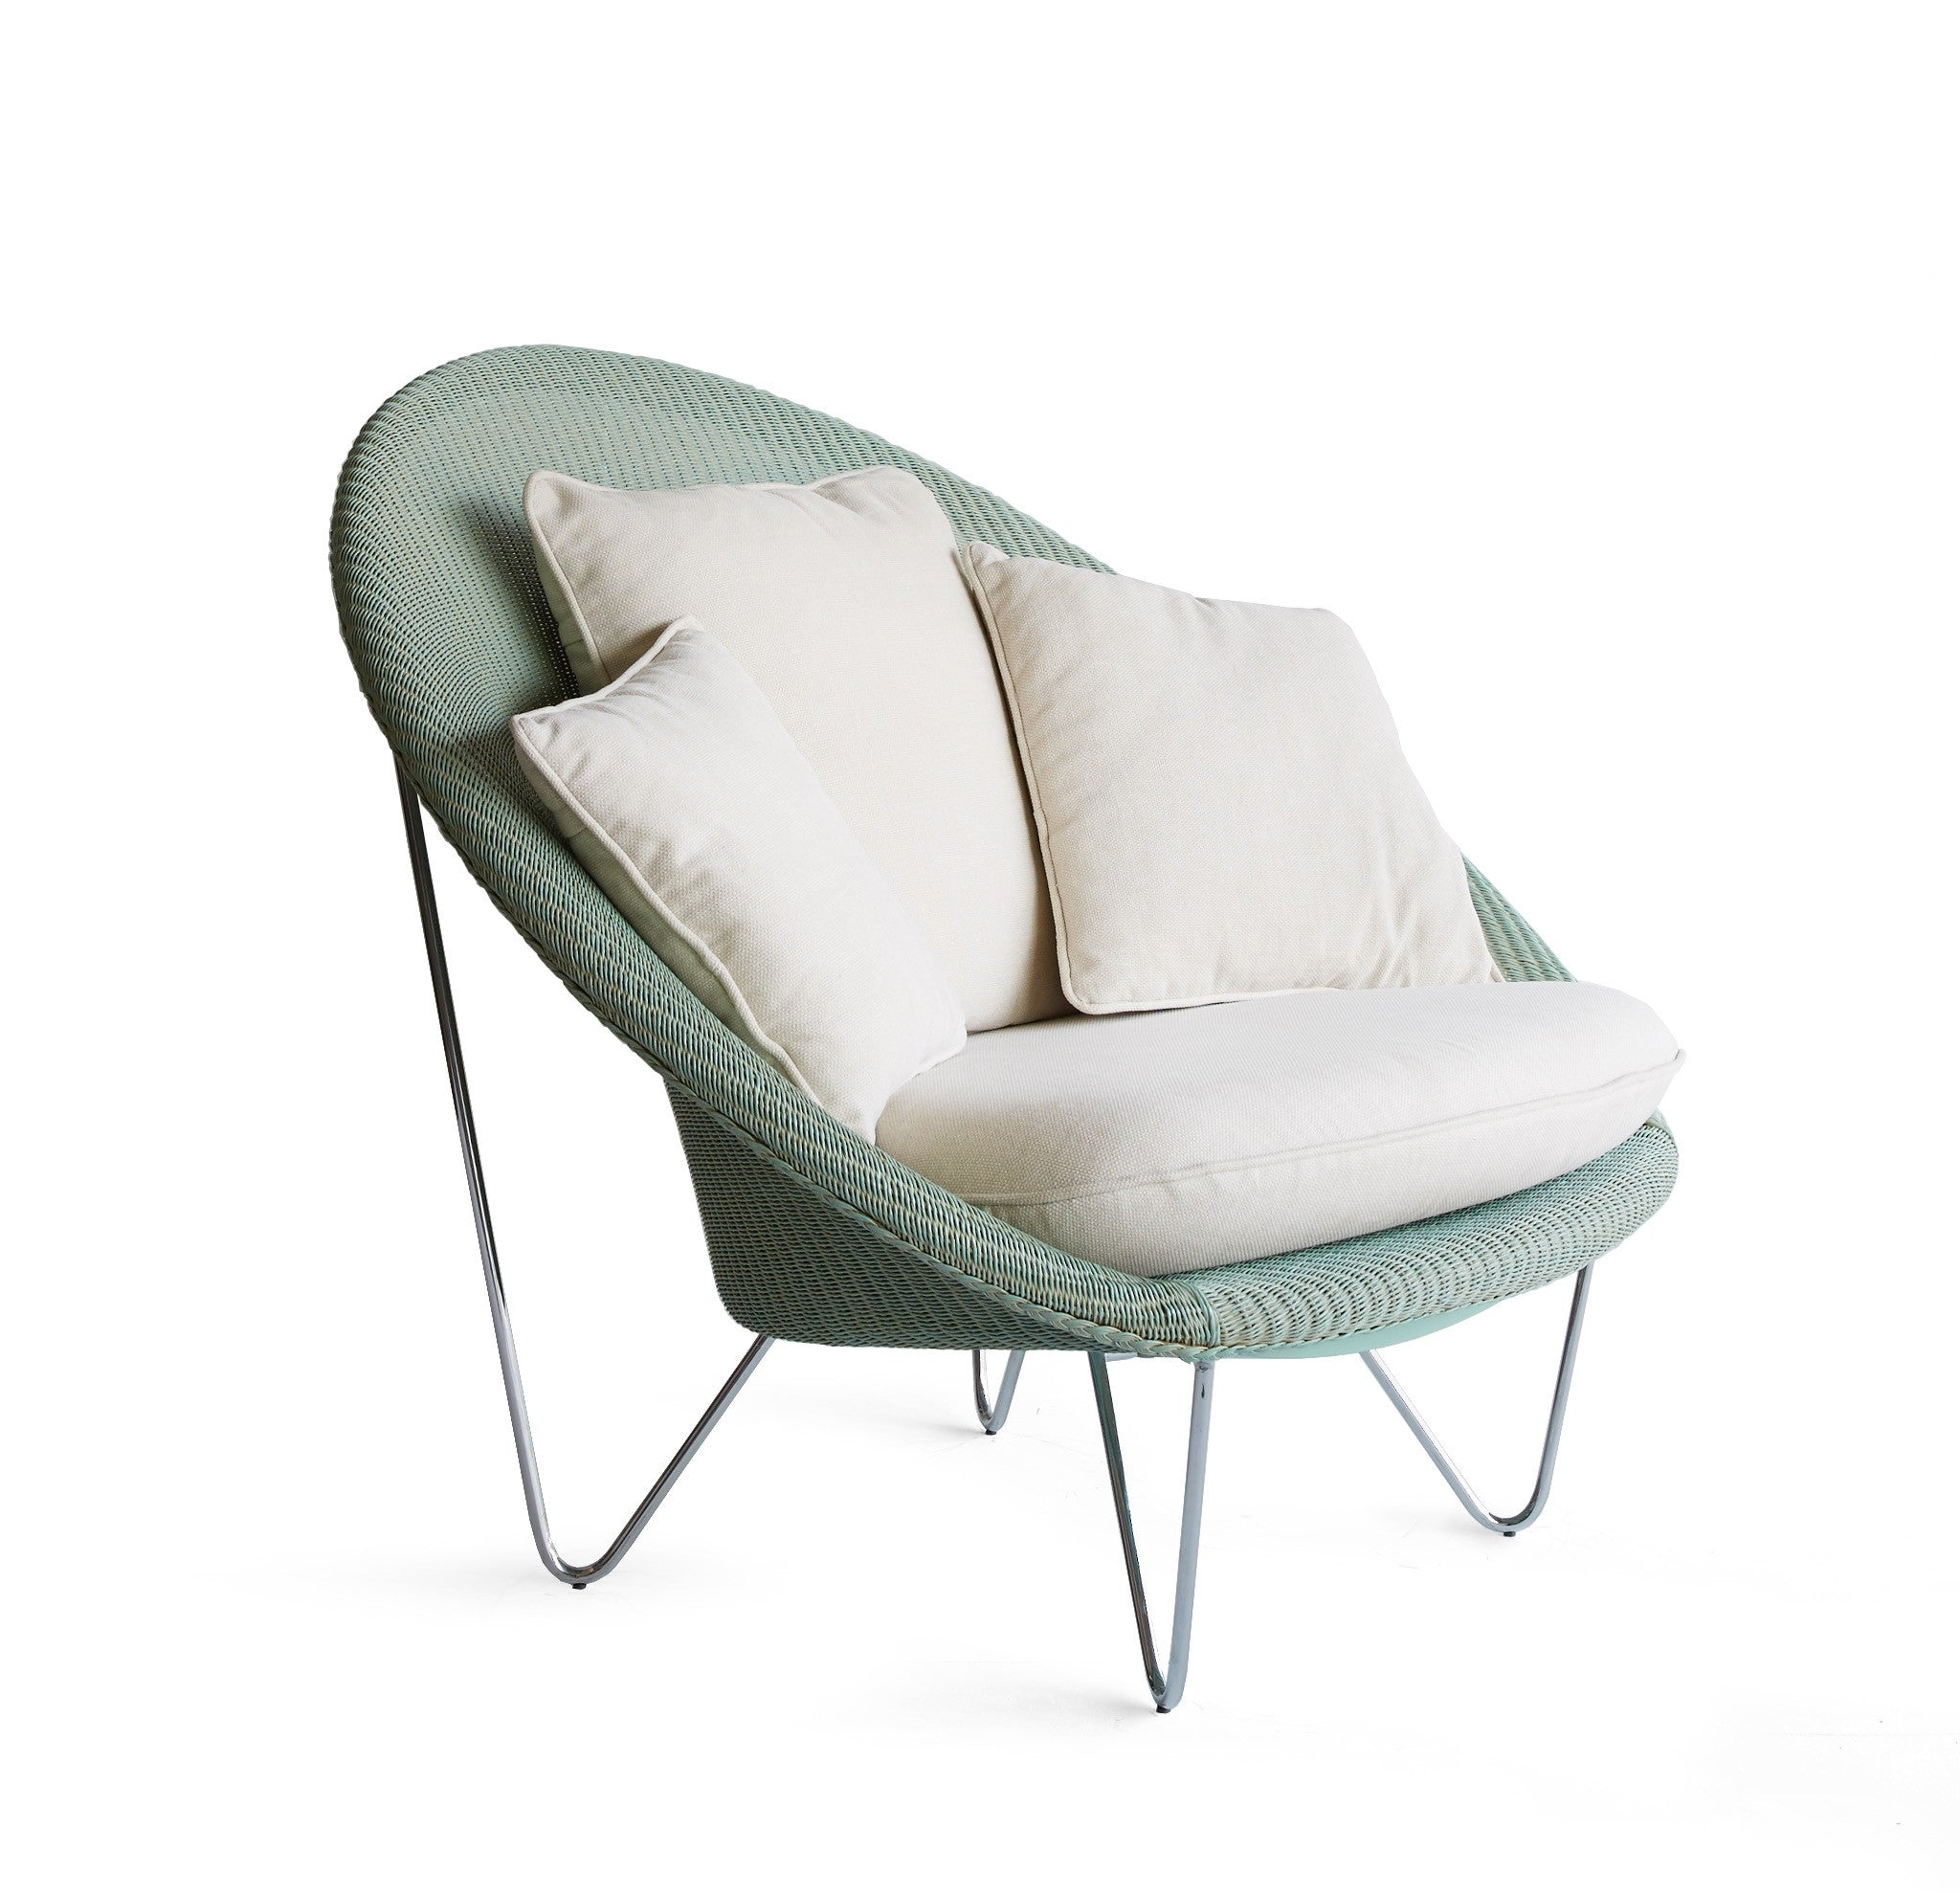 Joe Lounge Chair | Aqua MW - Vincent Sheppard - Originals Furniture - Singapore - 3